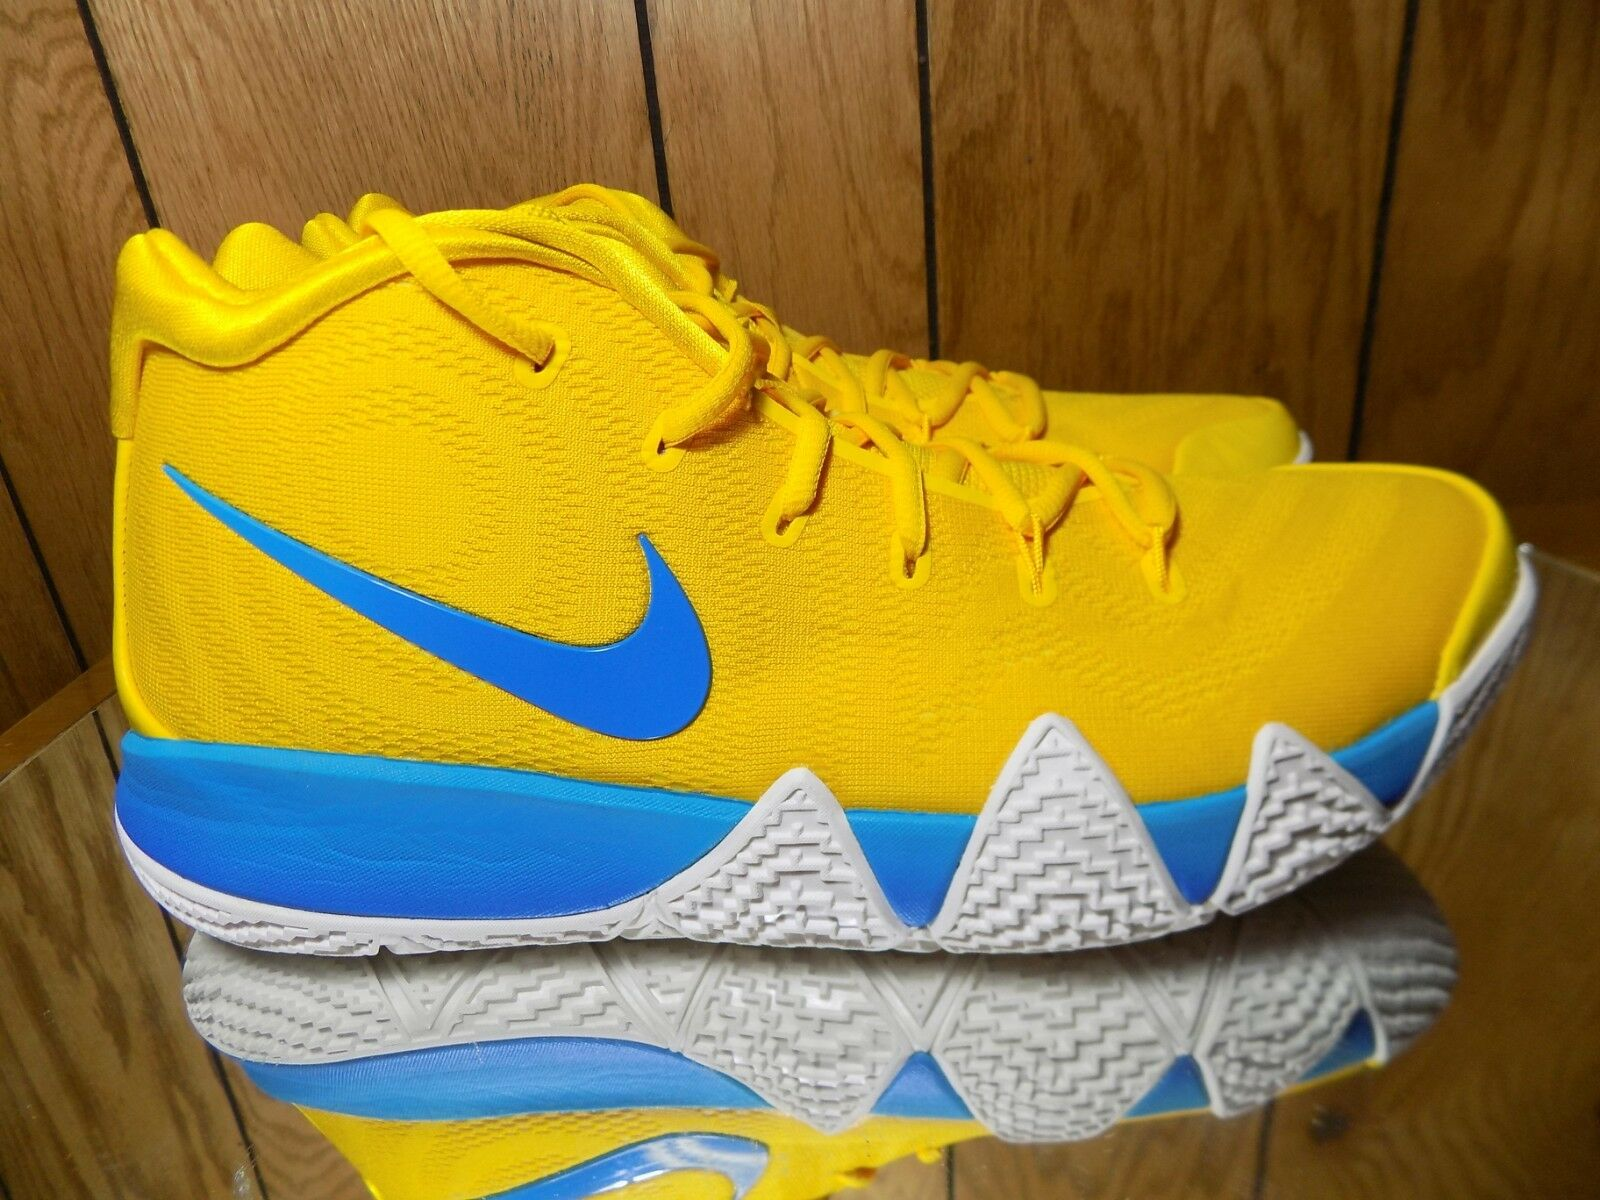 Nike Kyrie 4 IV Kix yellow Multi-color Yellow bluee Cereal Pack BV0425-700 s 12